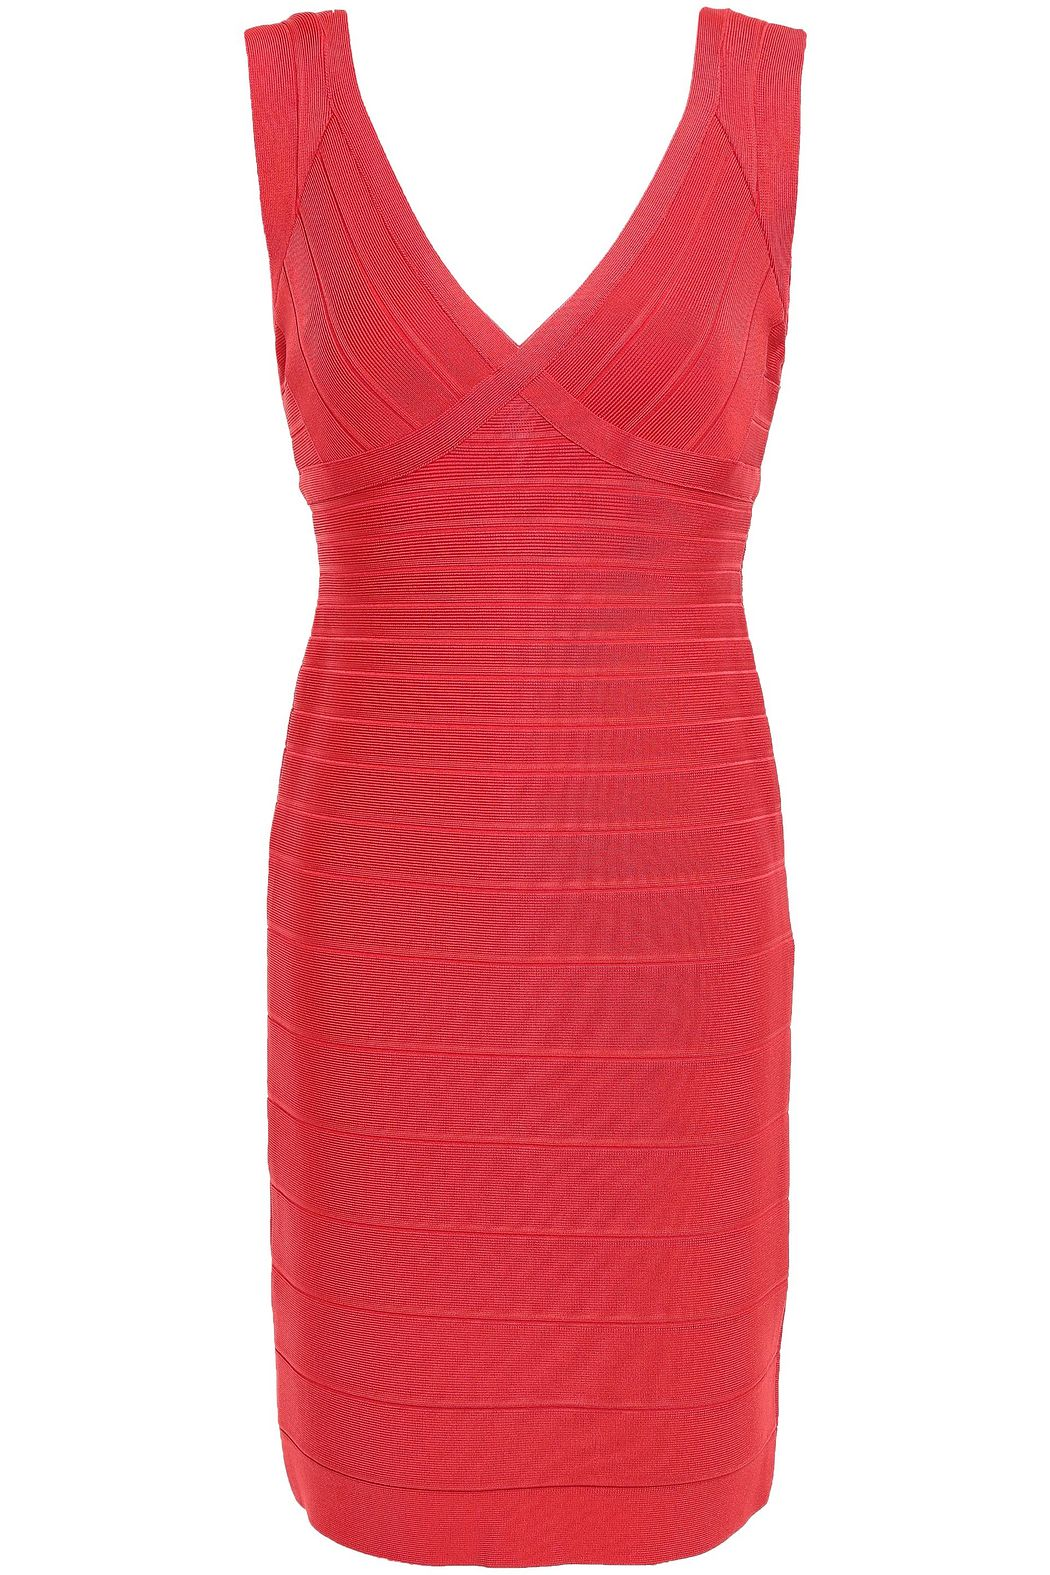 Karima open-back bandage dress